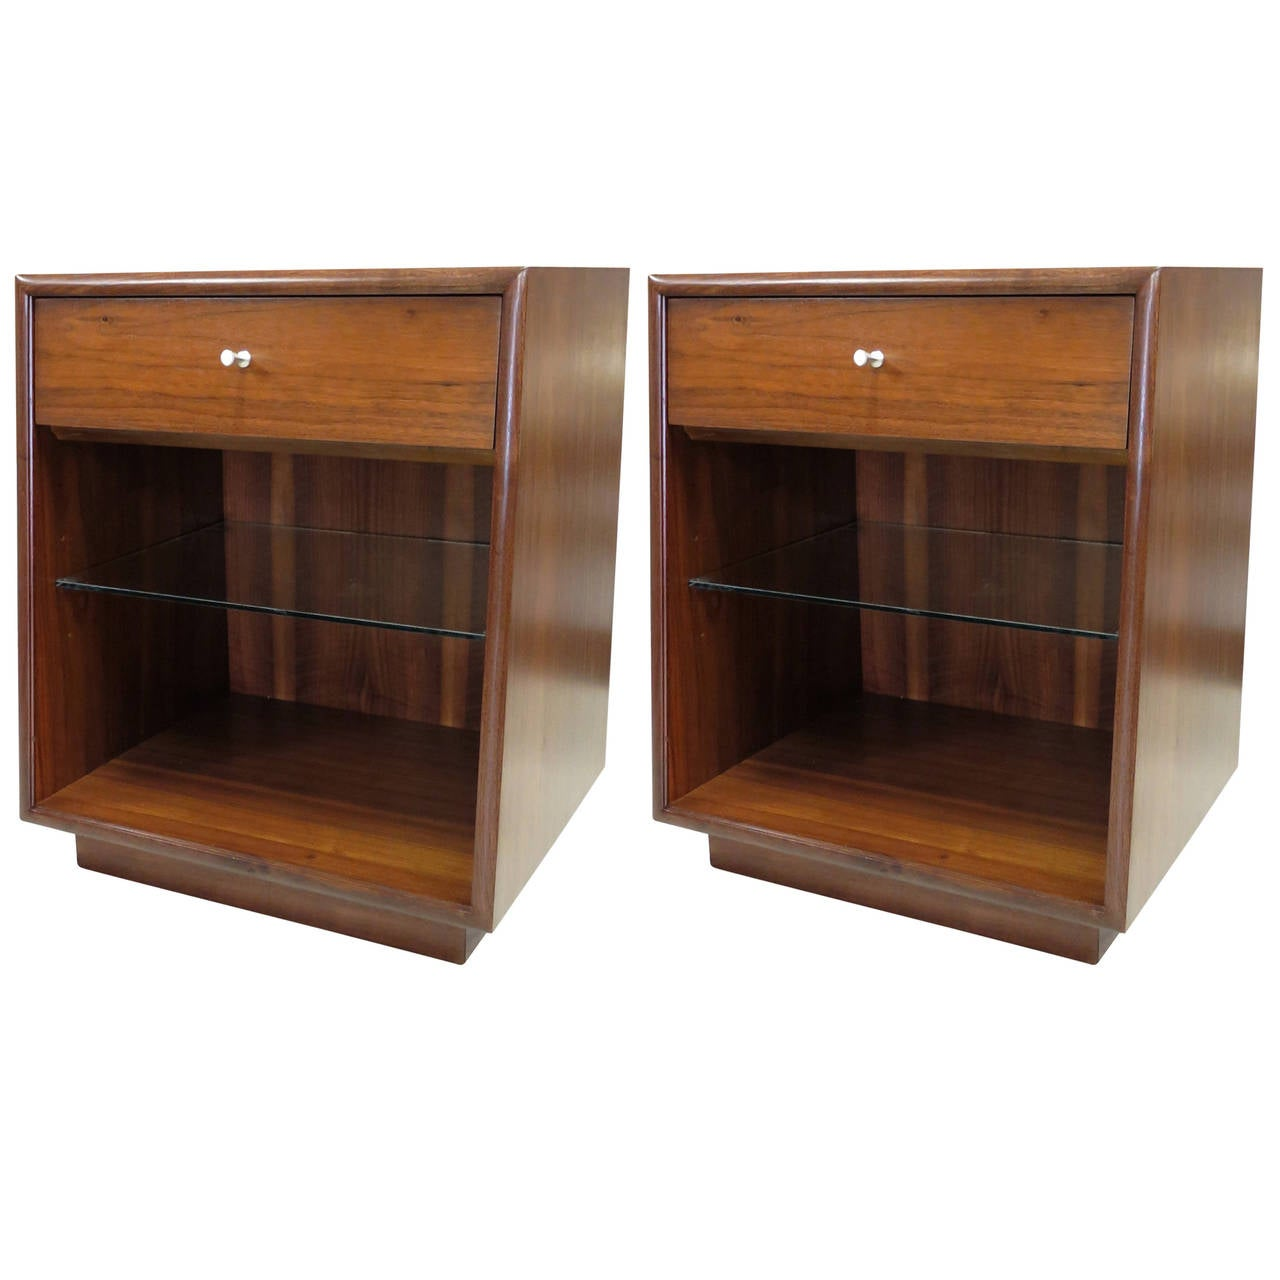 1950s Pair of Drexel Nightstands